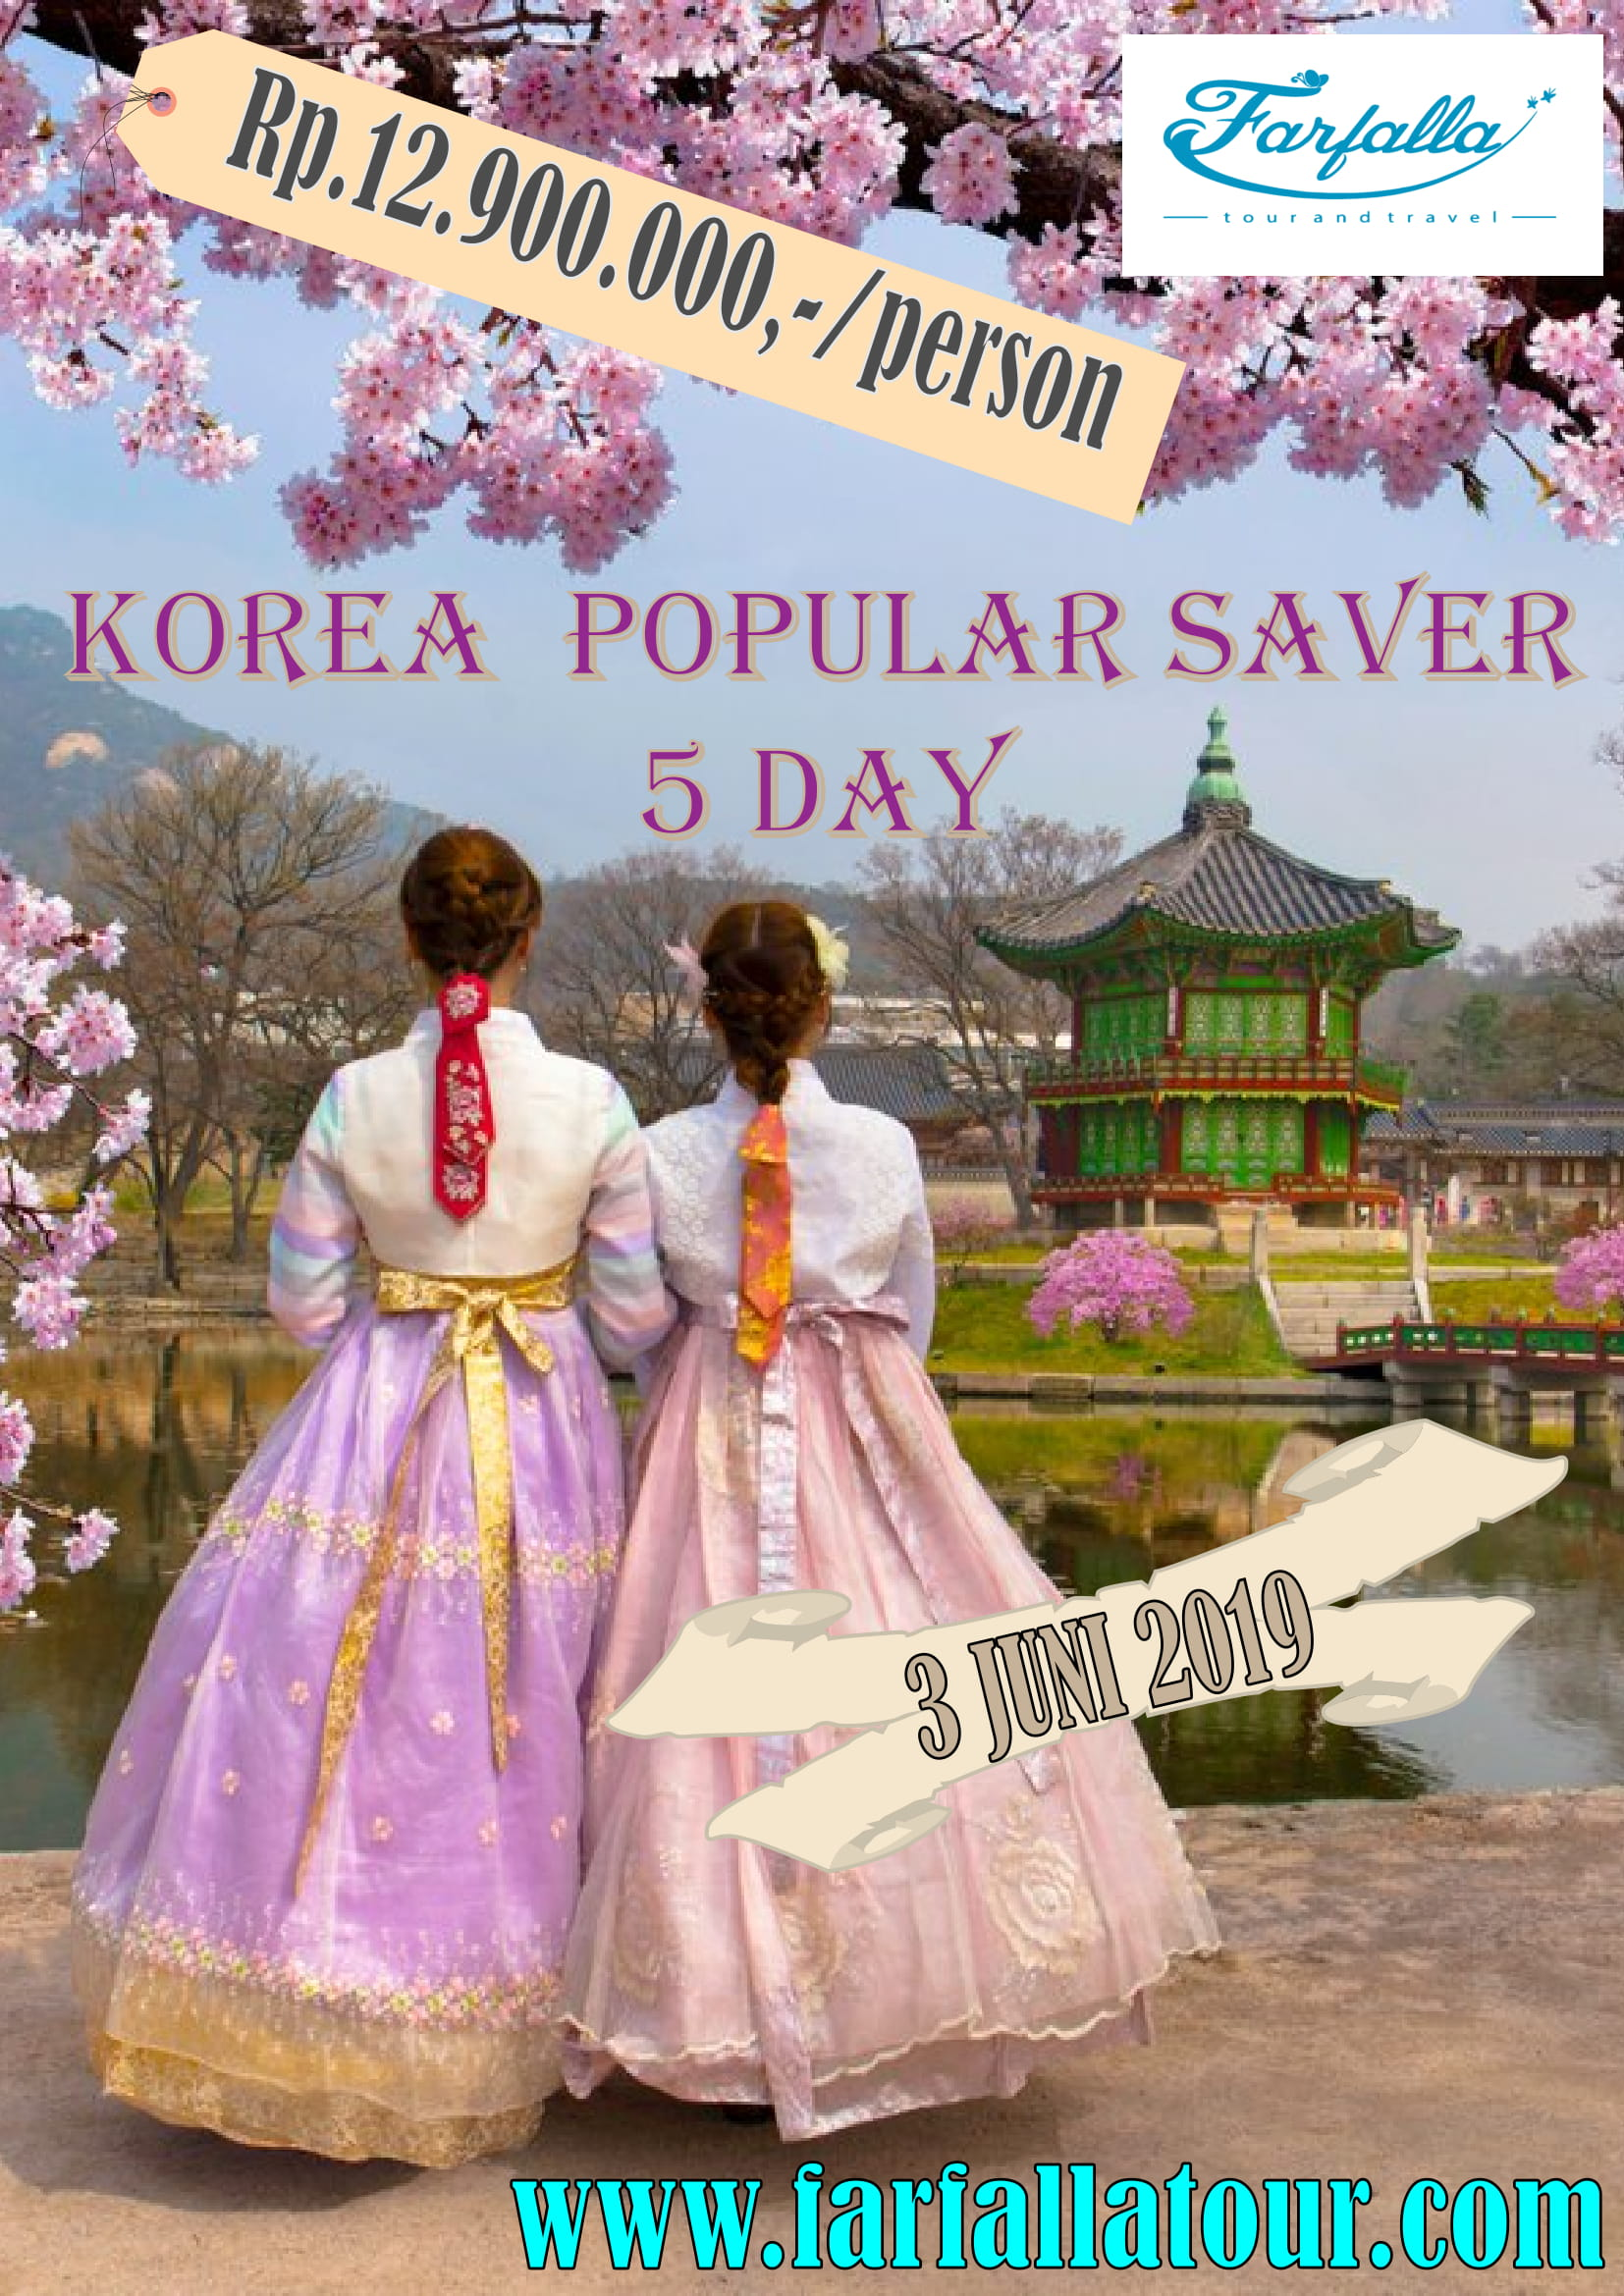 Korea Popular Saver 5D (03 Juni 2019)